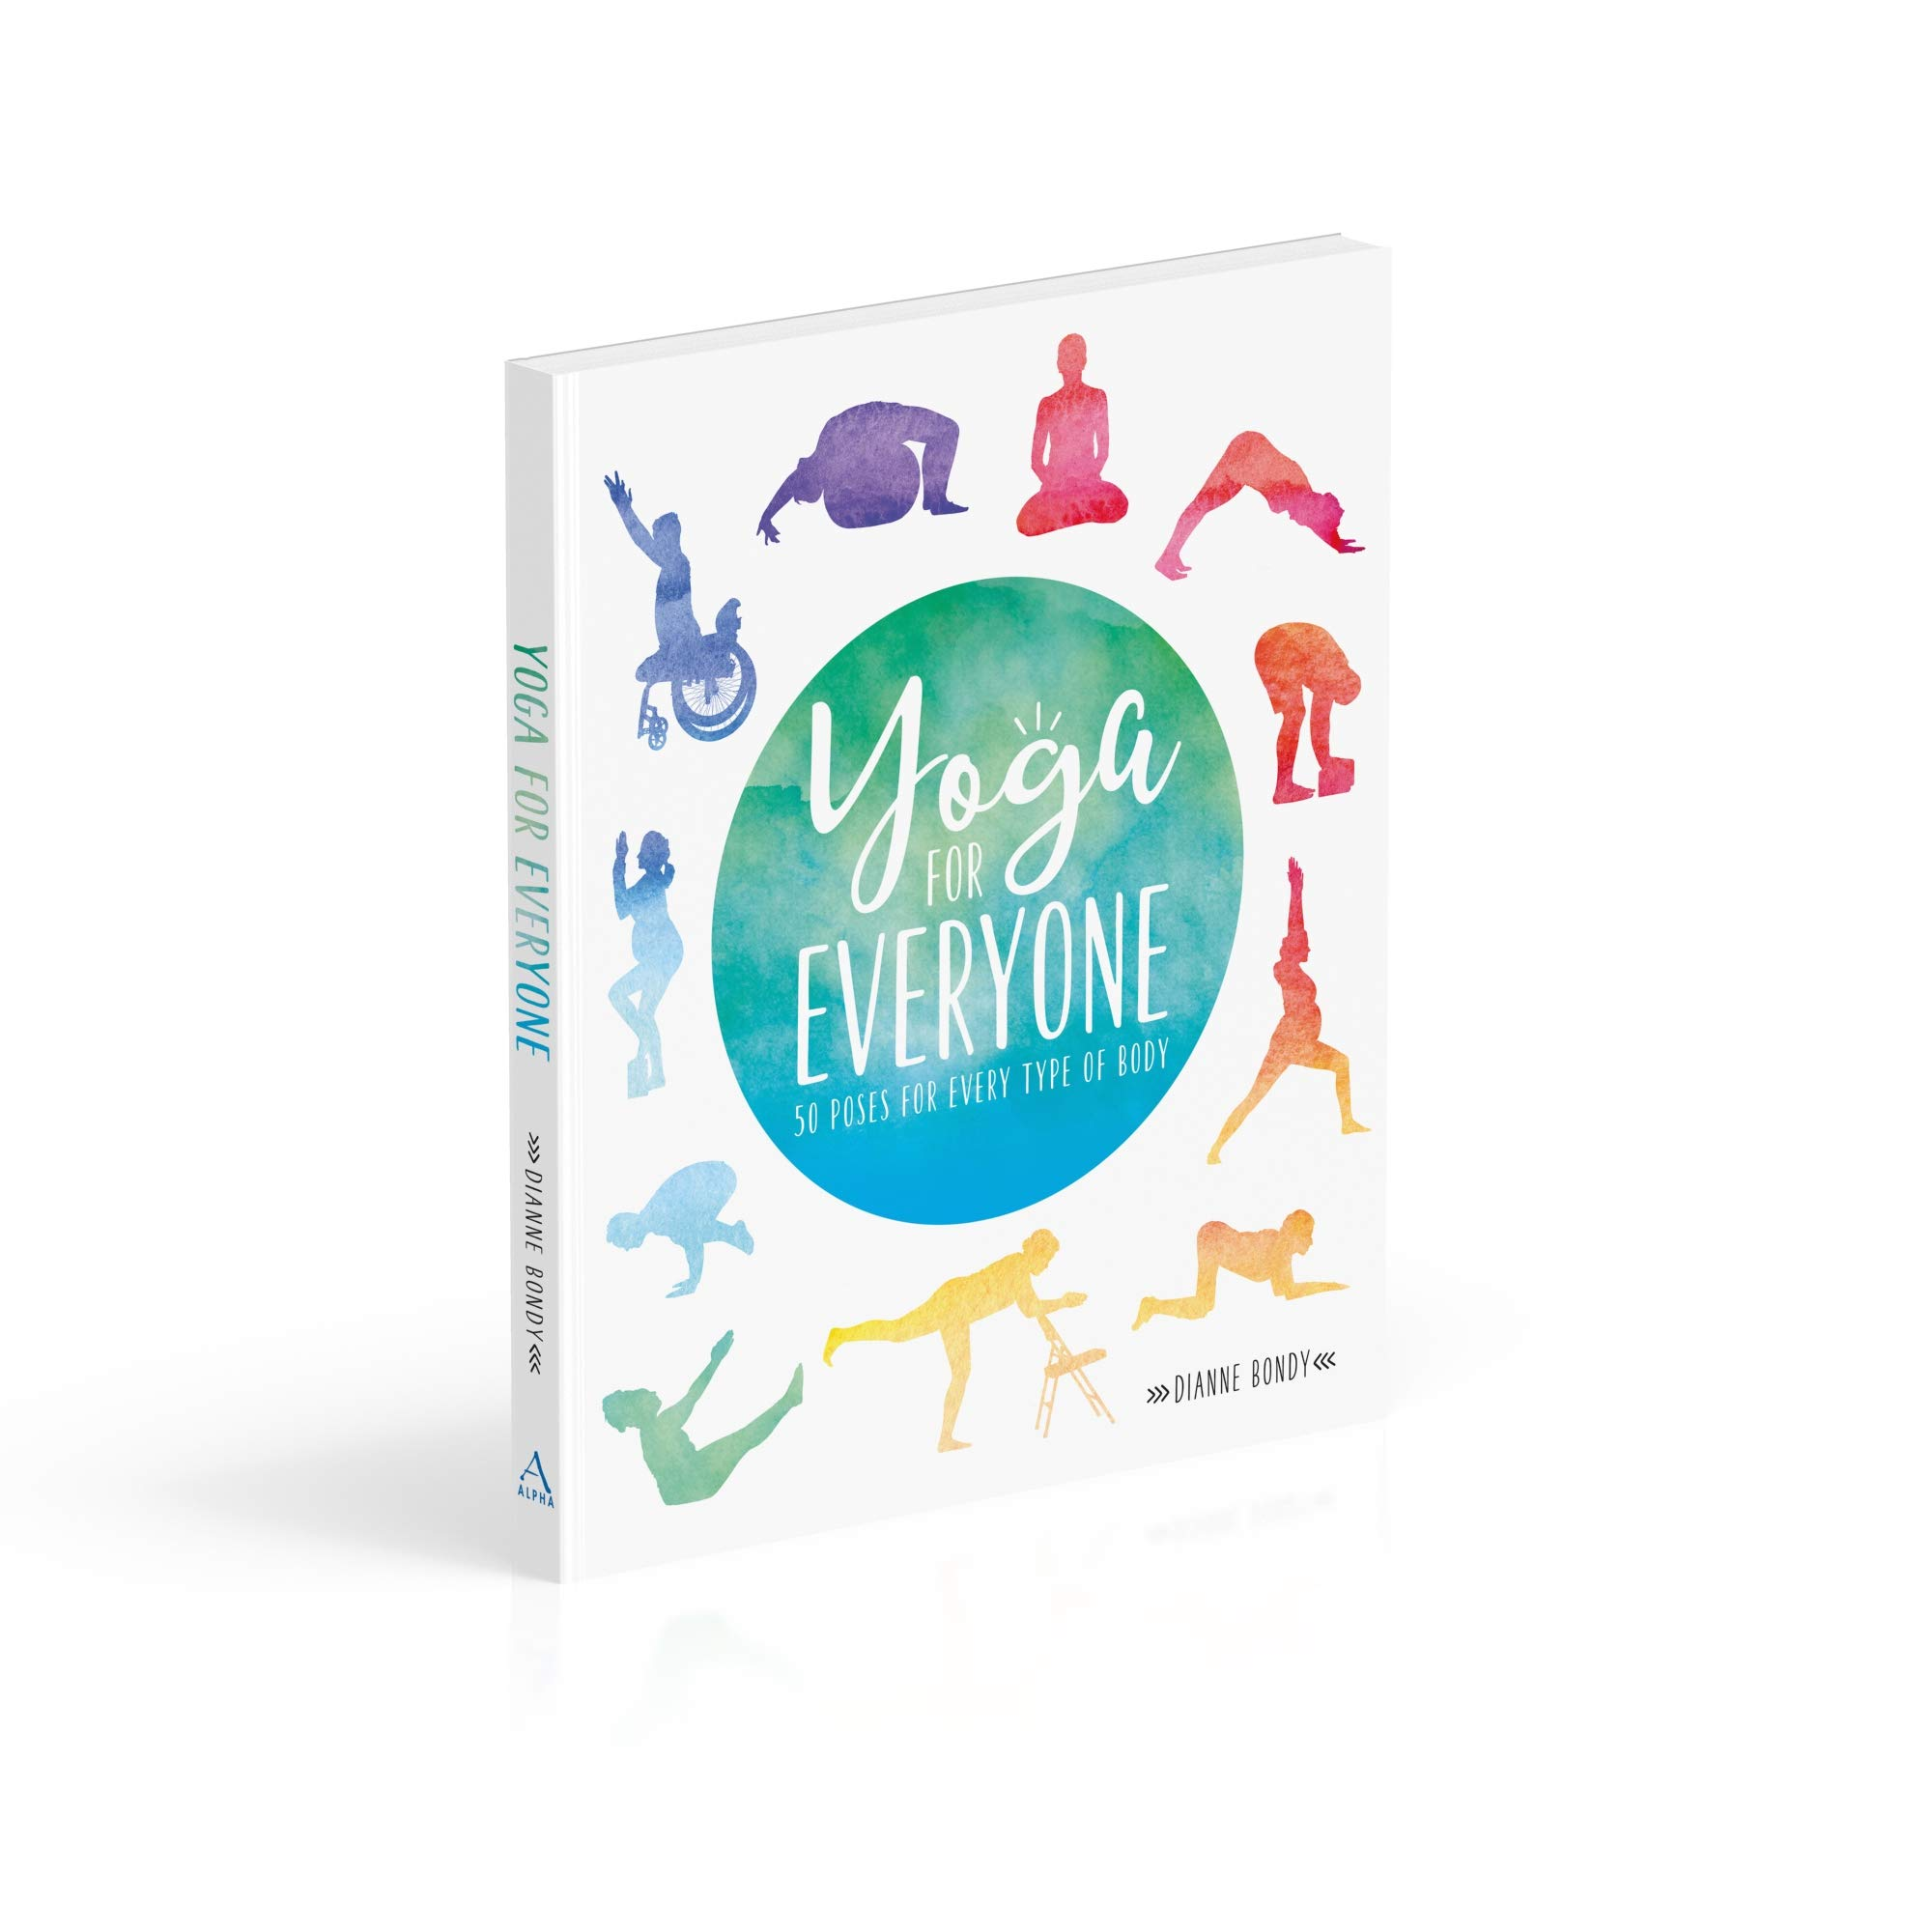 Yoga For Everyone 50 Poses For Every Type Of Body Bondy Dianne 9781465480774 Amazon Com Books